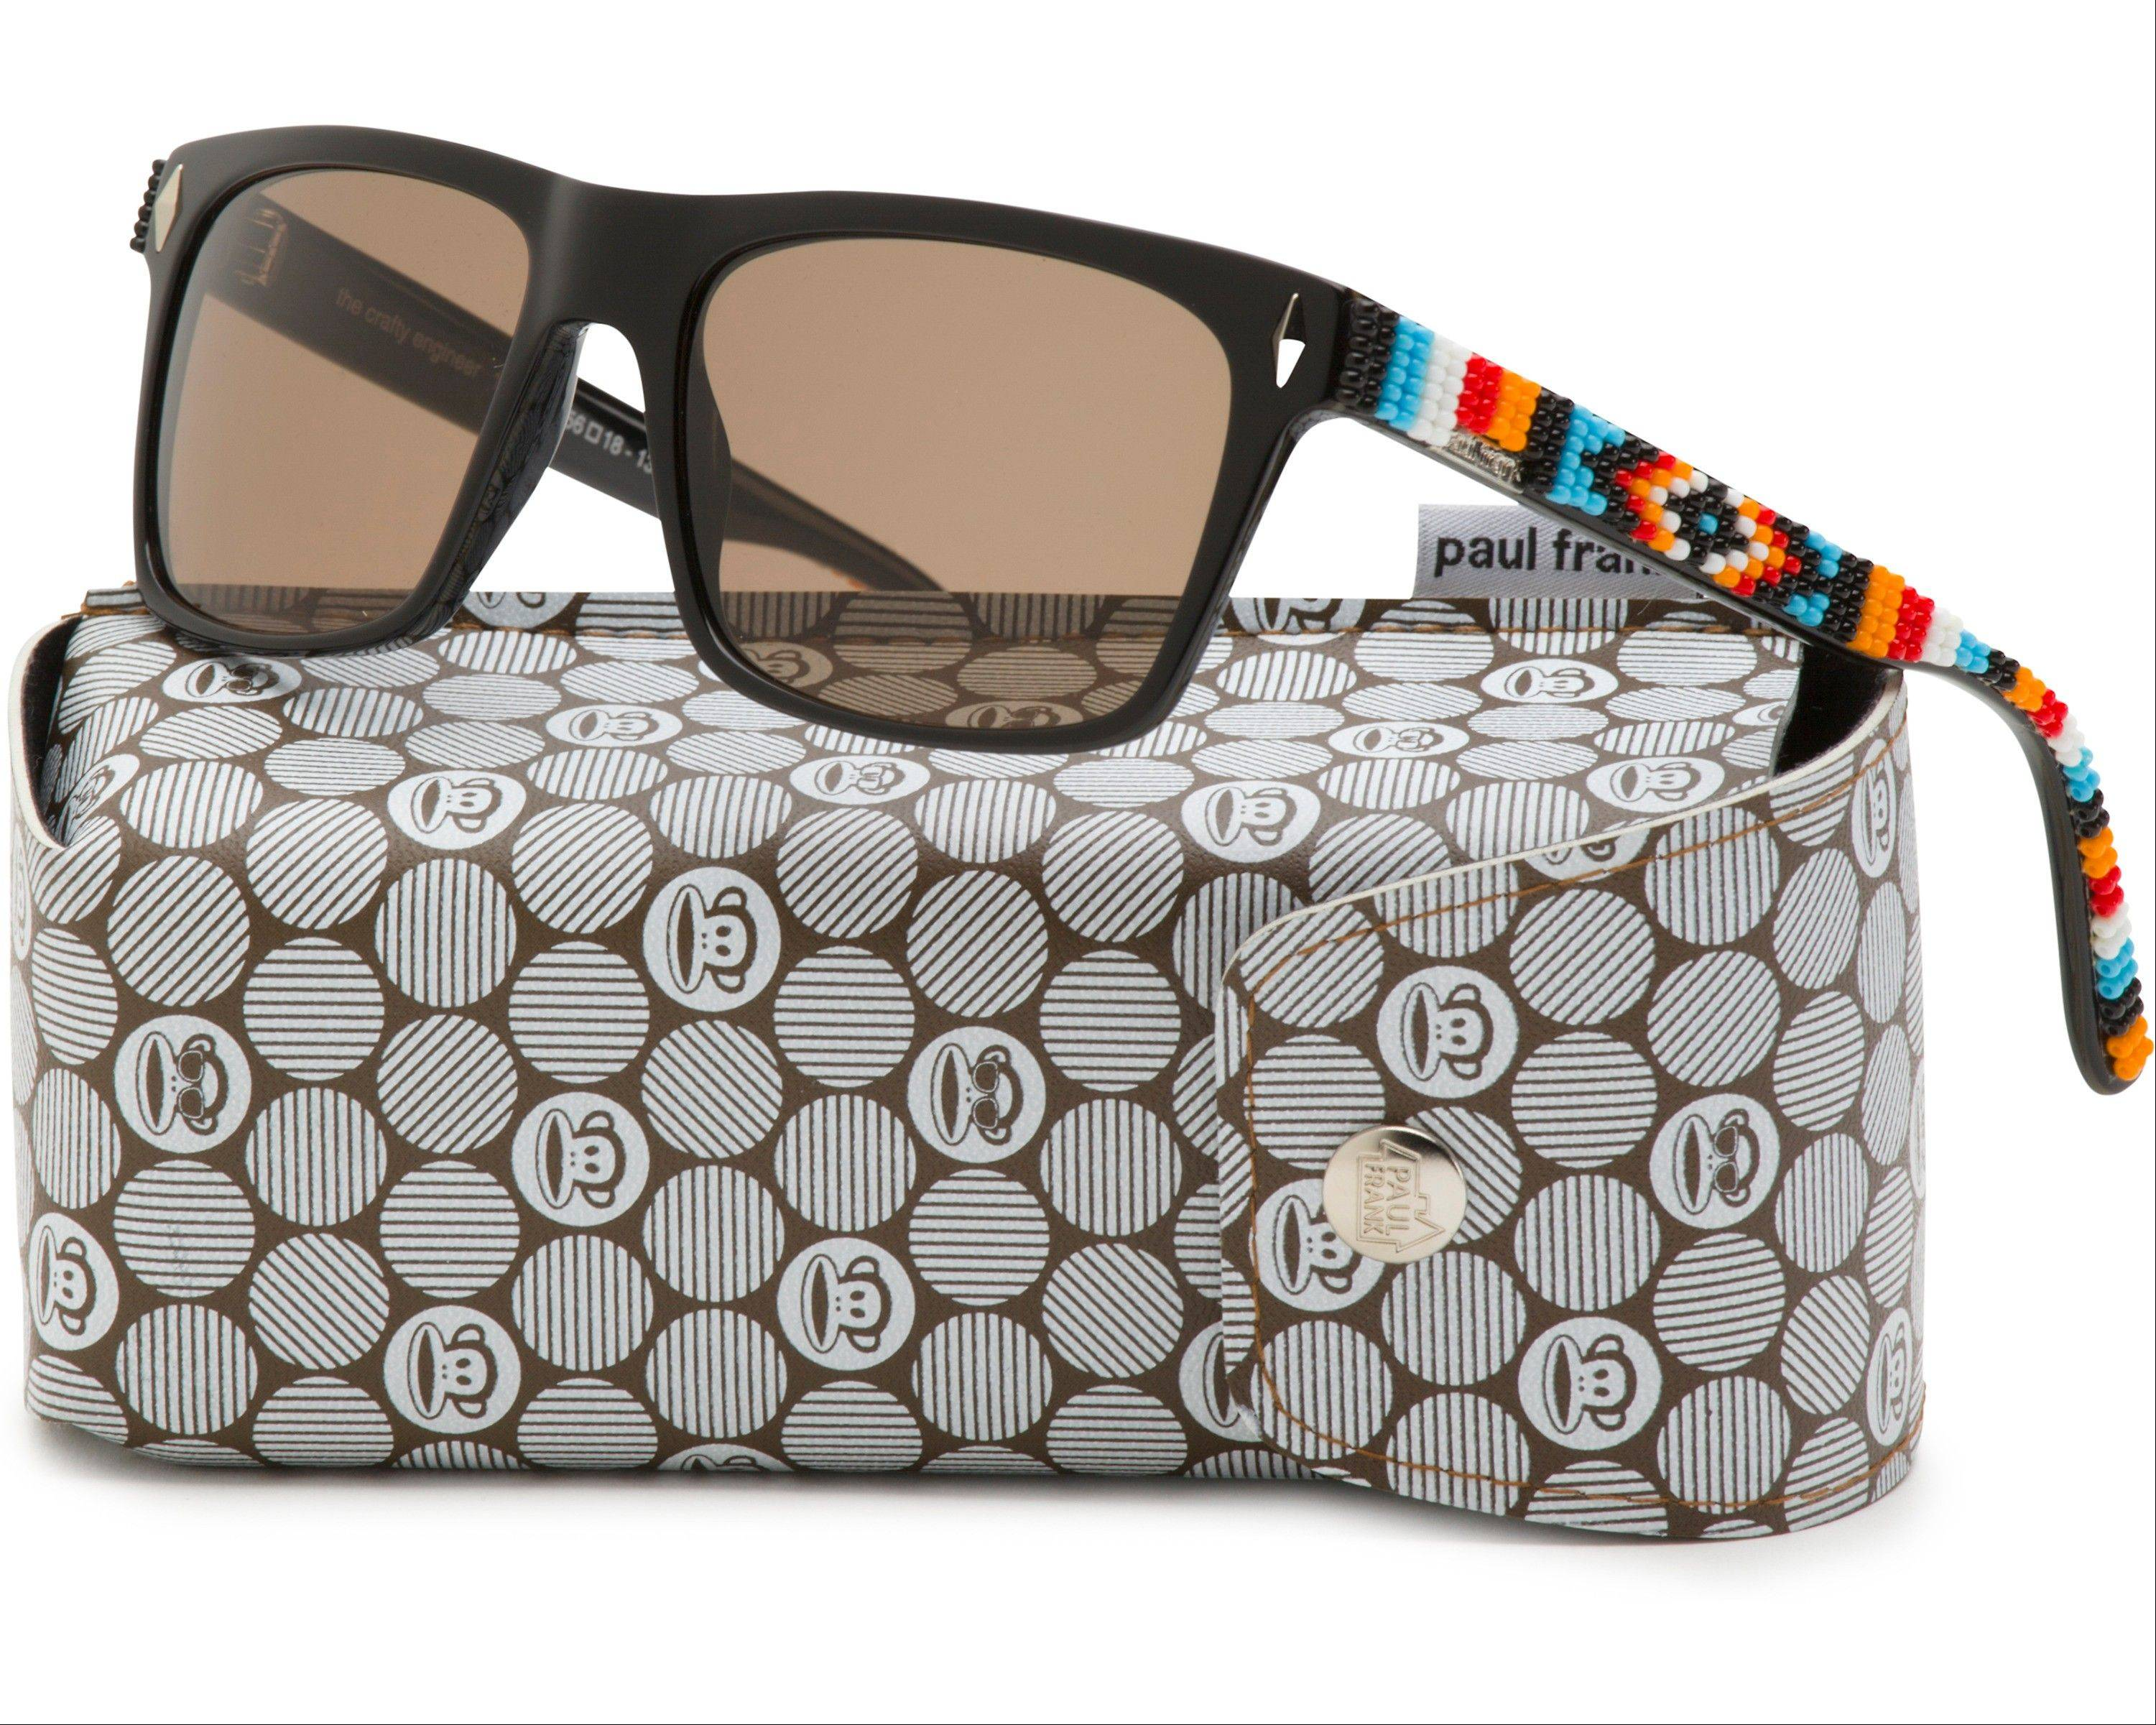 Beaded sunglasses designed by artist Candace Halcro, a member of the Plains Cree and Metis Aboriginal tribes. Paul Frank collaborated with Halcro and three other Native American artists and designers to create a new collection.